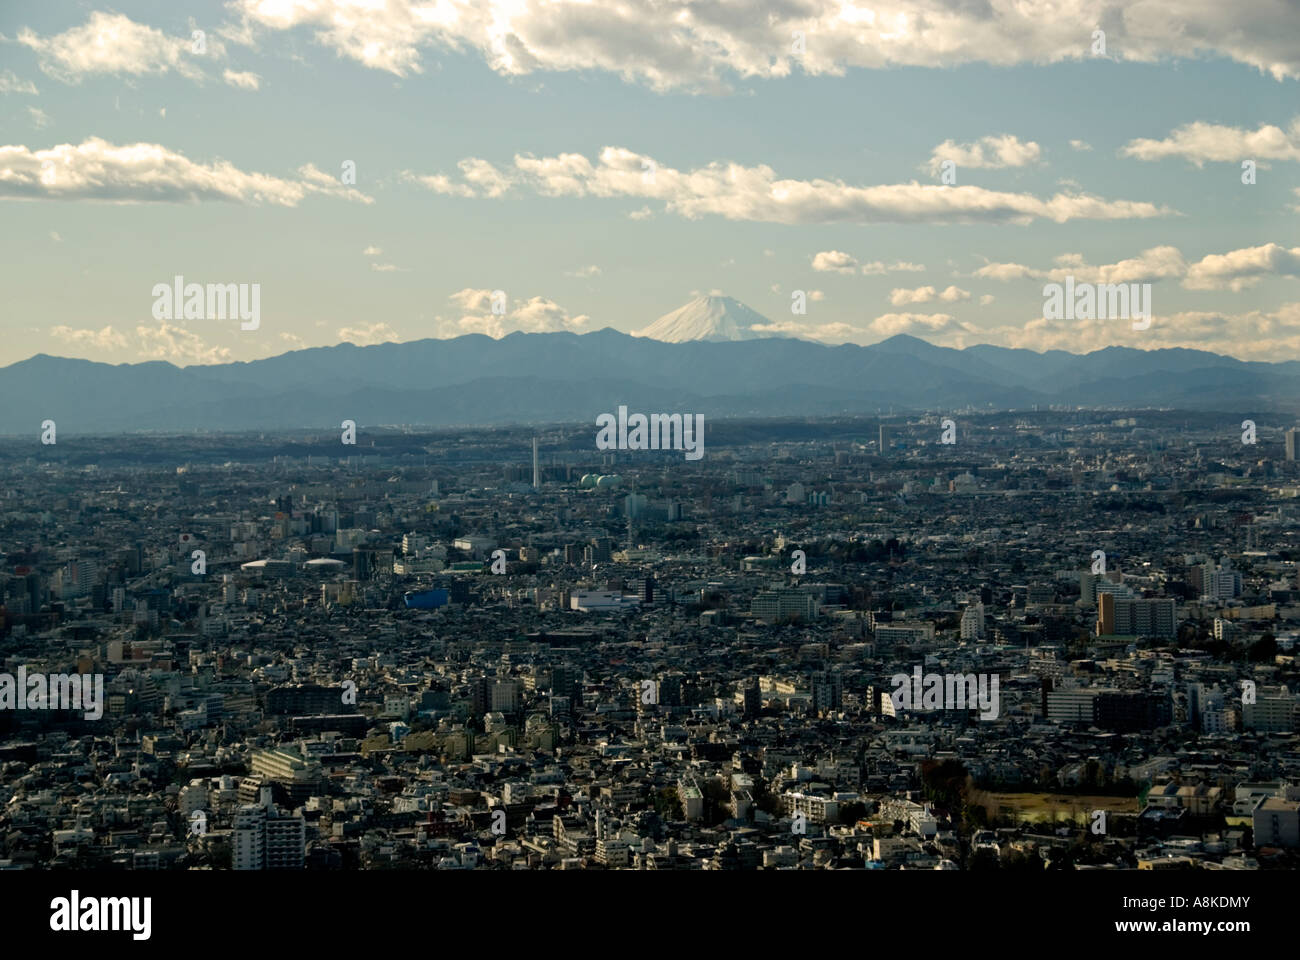 View over Tokyo, Japan, from top of metropolitan goverment office in Shinjuku district. Mount Fuji in distance - Stock Image